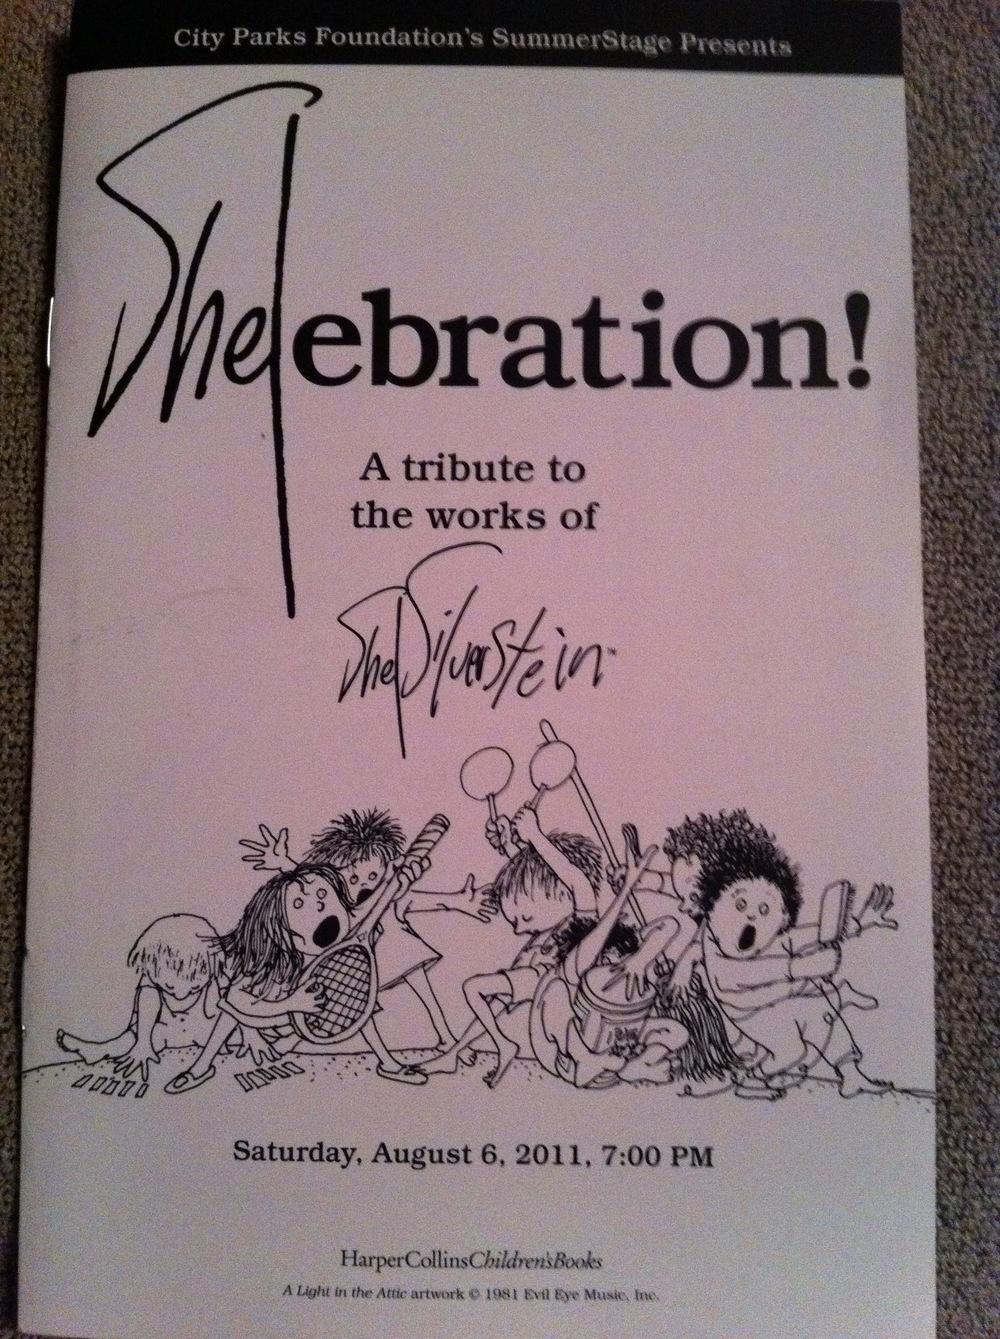 Creator and Co-producer of SHELebration! a major Tribute to the writing, art and music of Shel Silverstein att Central Park SummerStage, NYC.